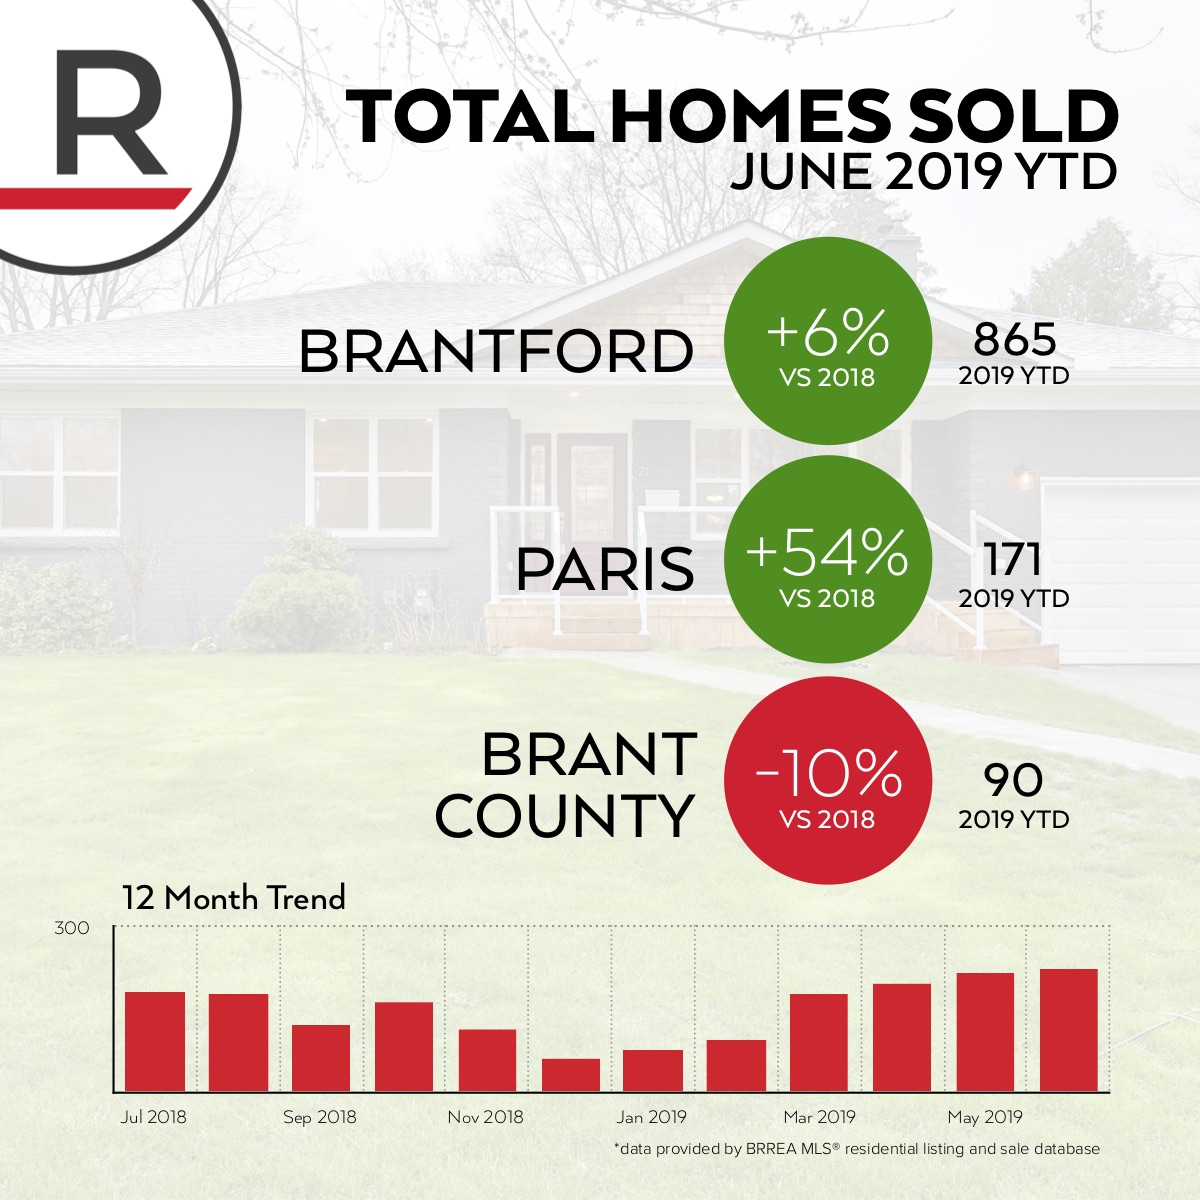 Demand for home is at its peak levels. 6% more homes have sold in Brantford this year and a staggering 54% more in Paris. Out in the county sales are down 10% year to date.